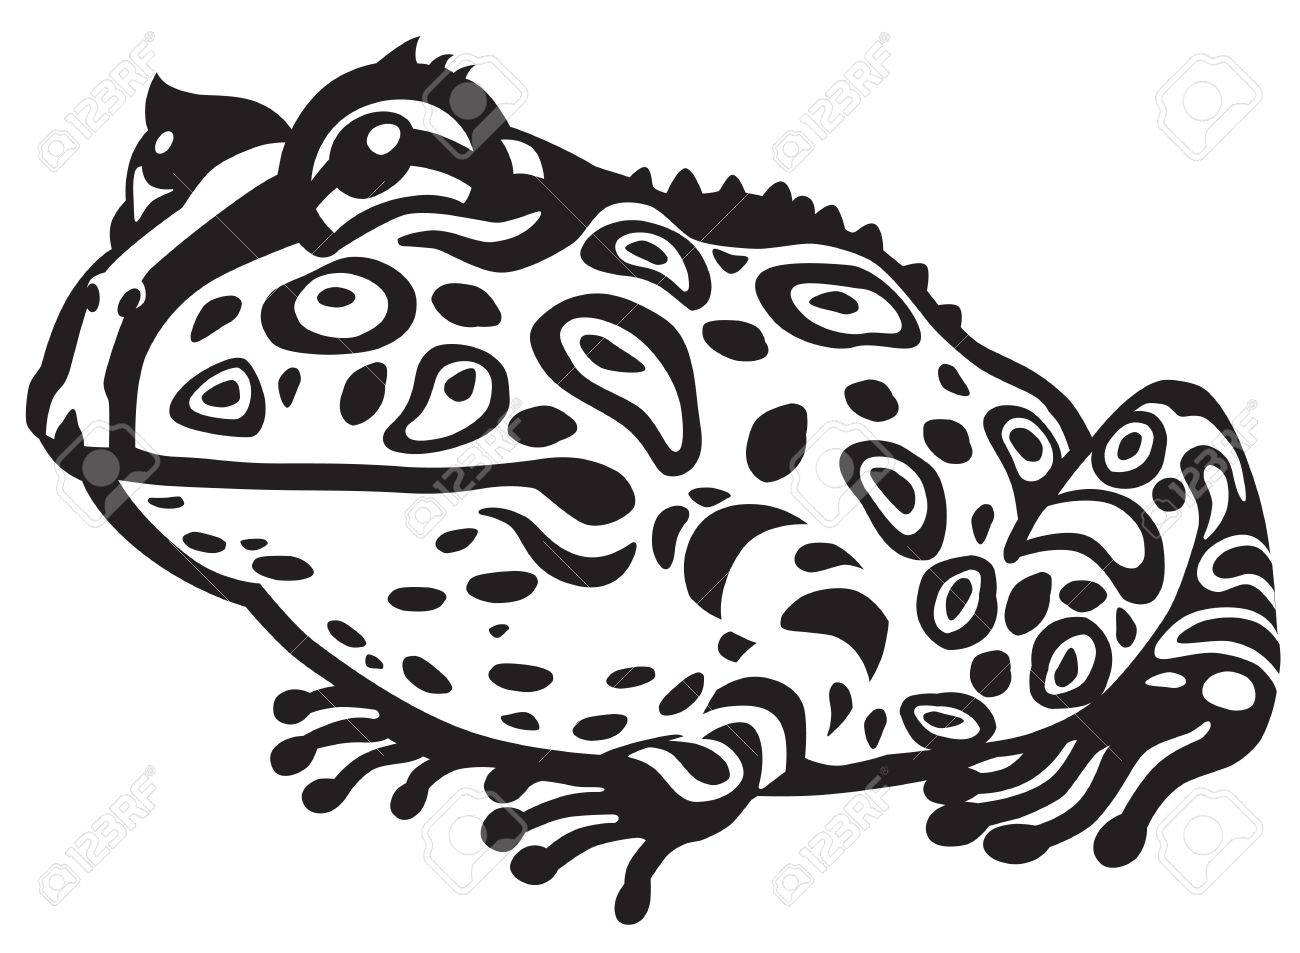 cartoon horned frog black and white image royalty free cliparts rh 123rf com TCU Horned Frog Icon TCU Horned Frogs Logo